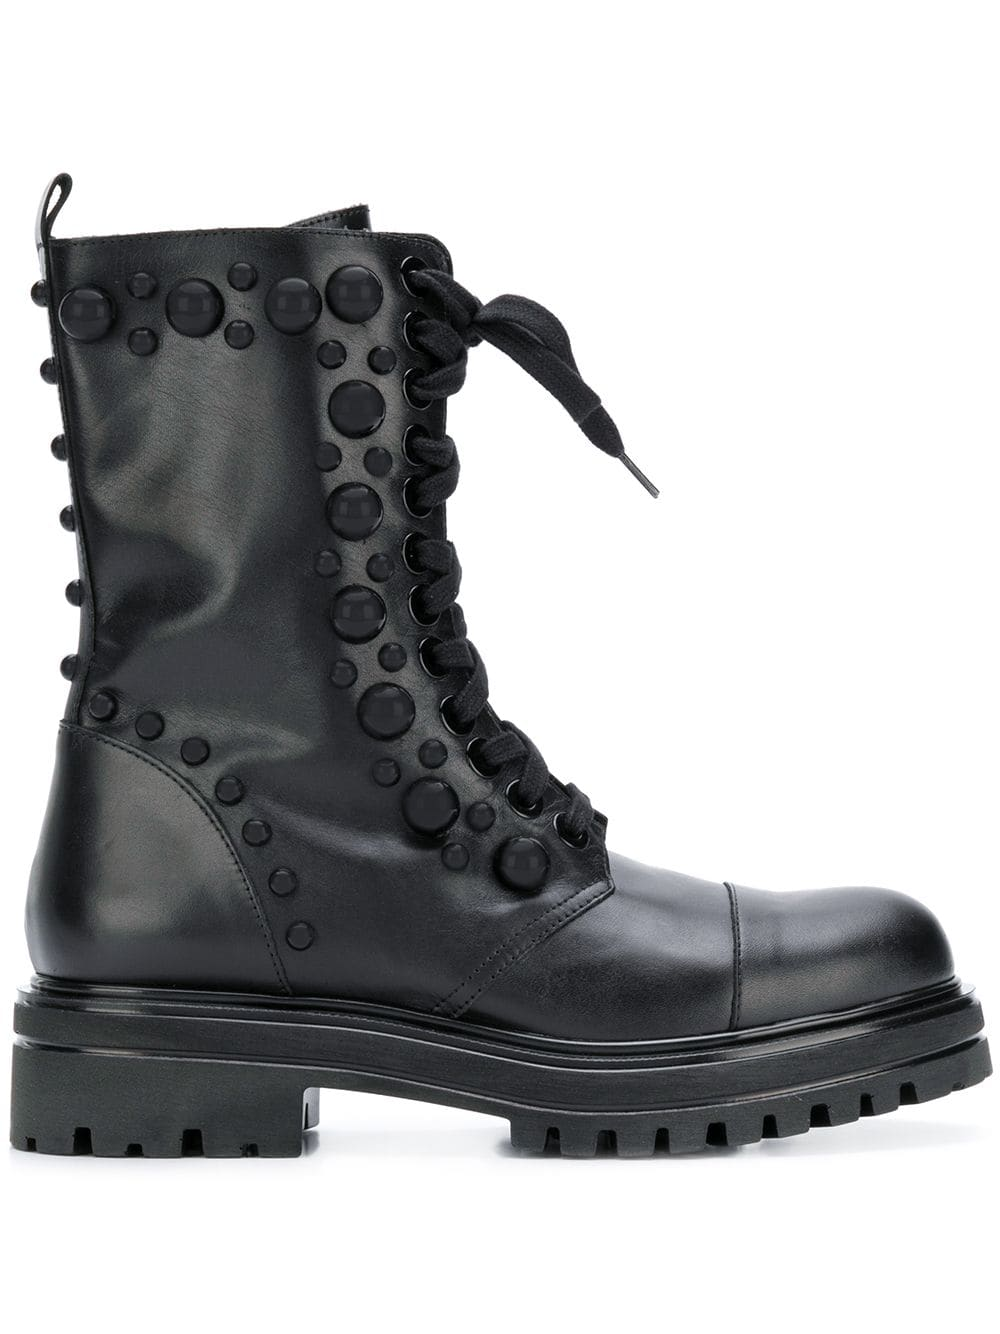 4f900a2bf37a6 https   milanstyle.com products hogl-fur-lining-ankle-boots-black ...